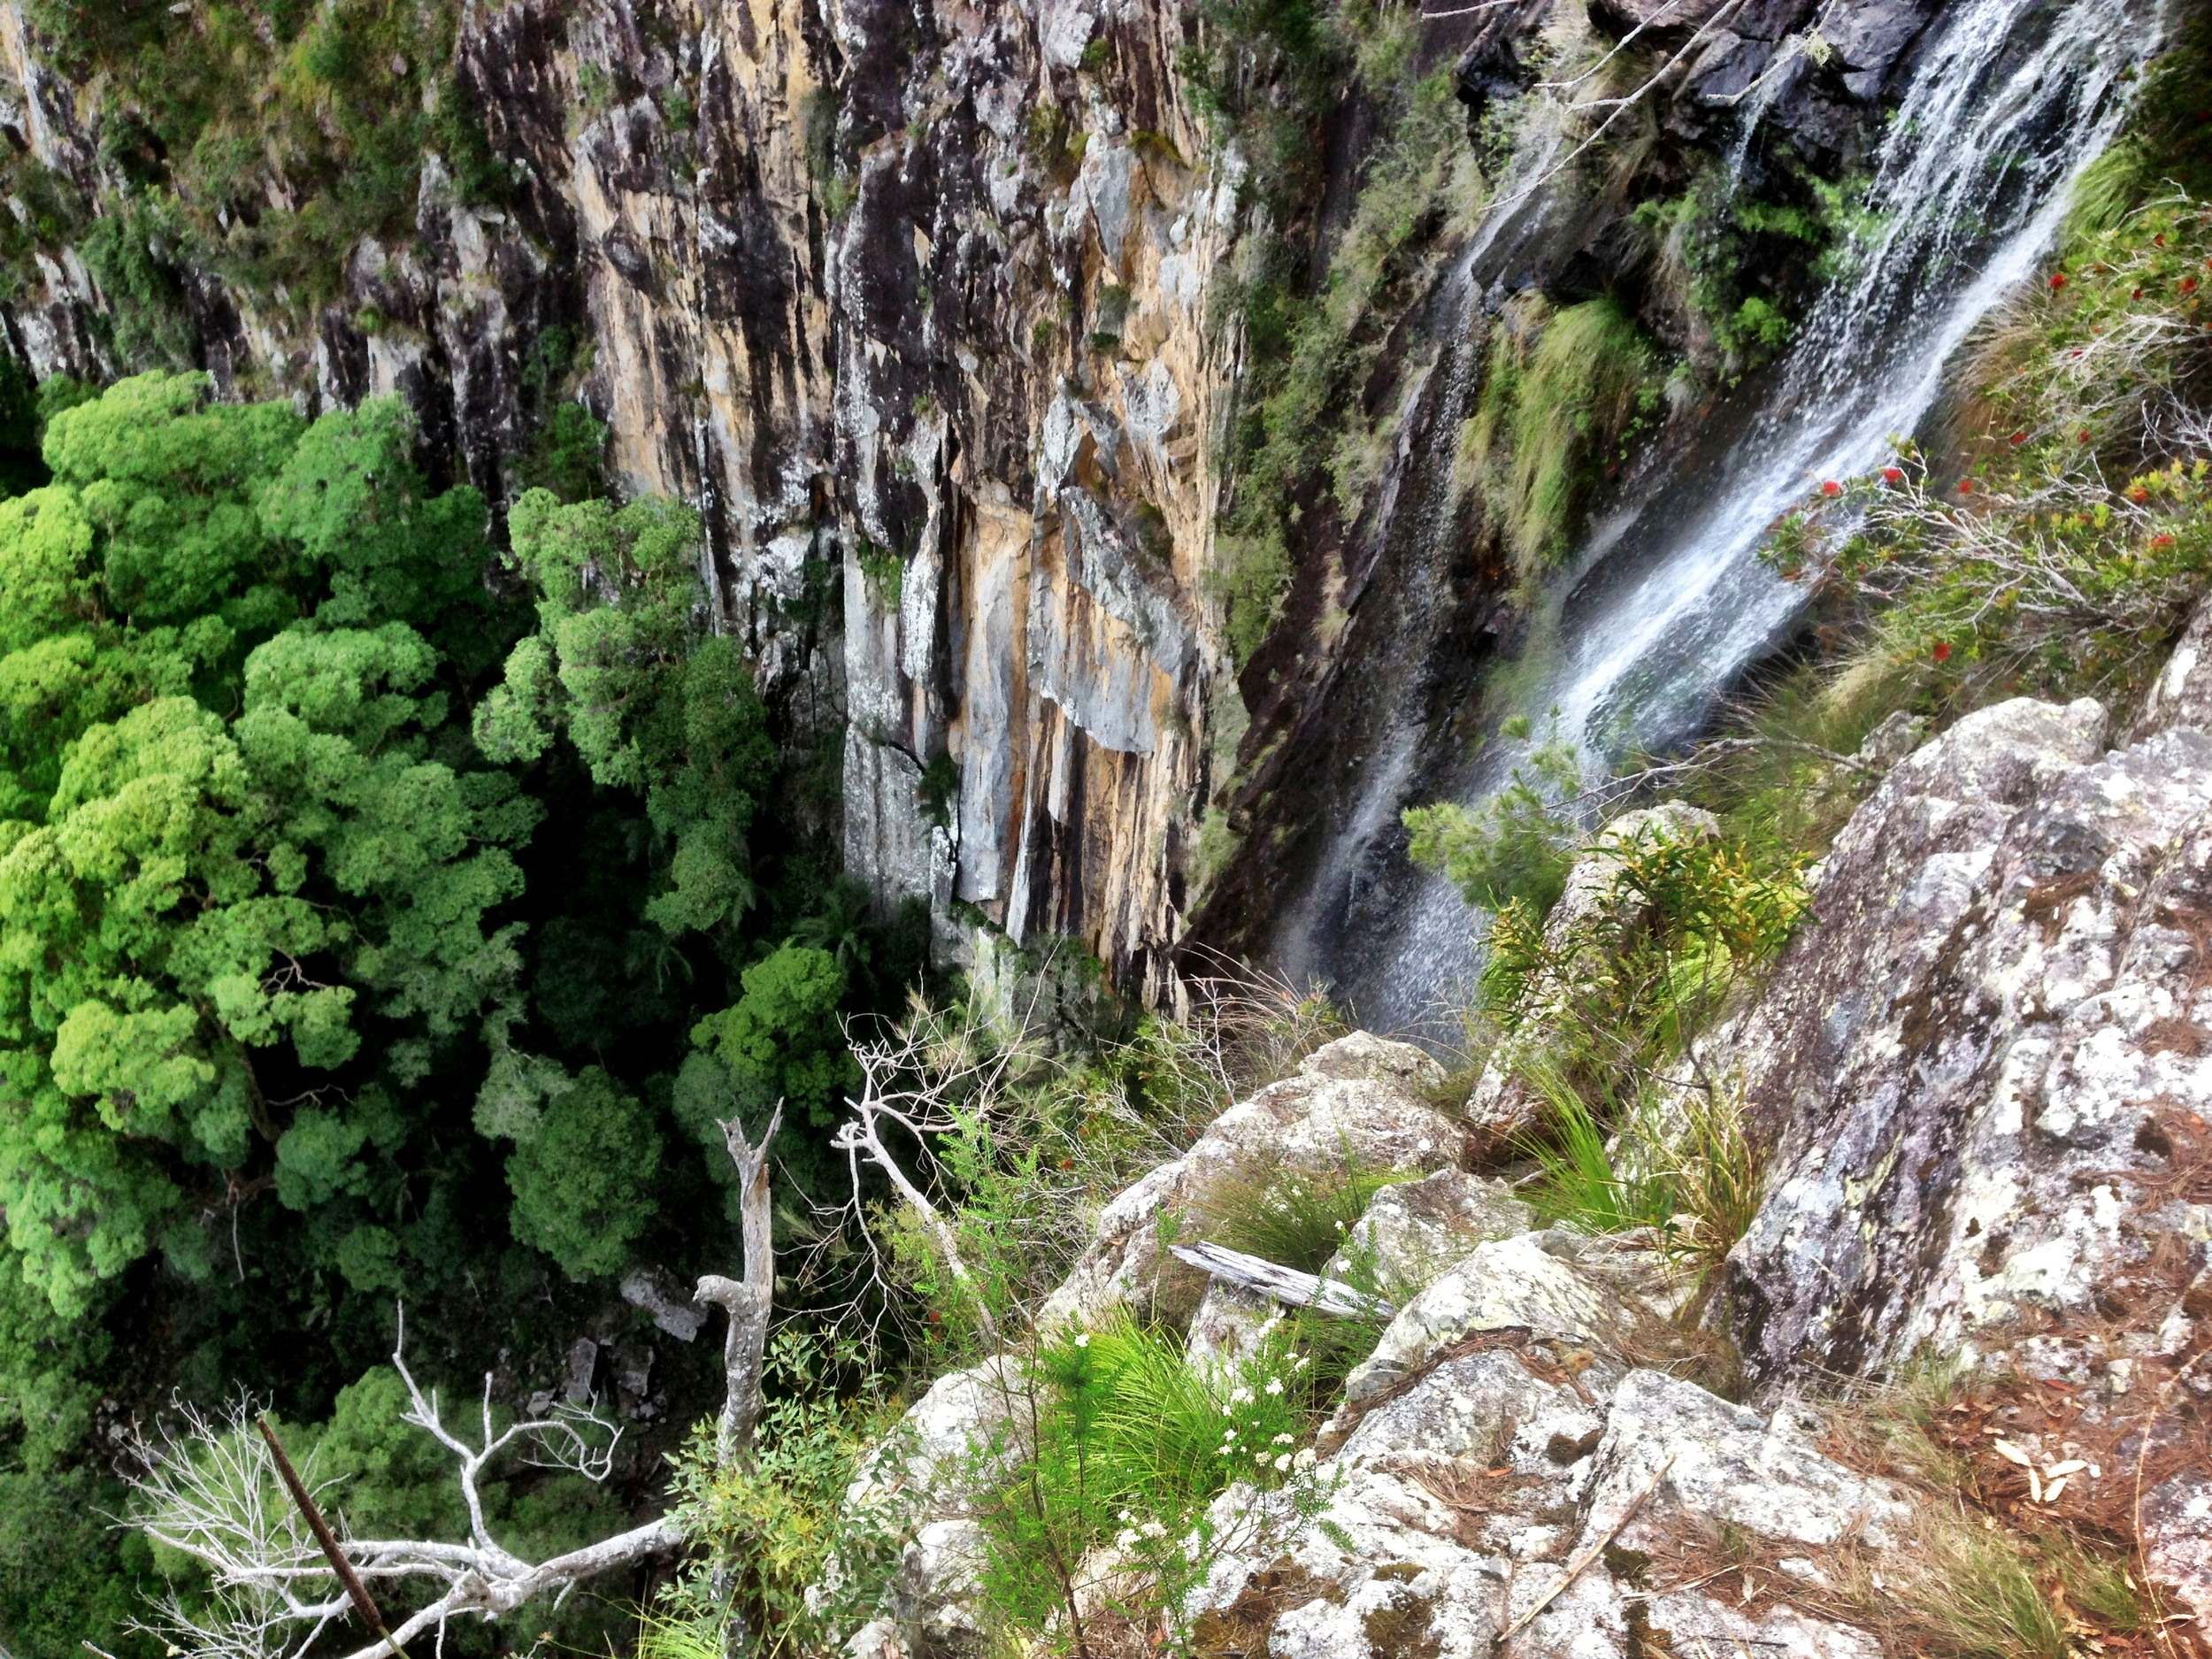 Worth the short drive from Nimbin to see the 100m hight Fitzroy Falls.